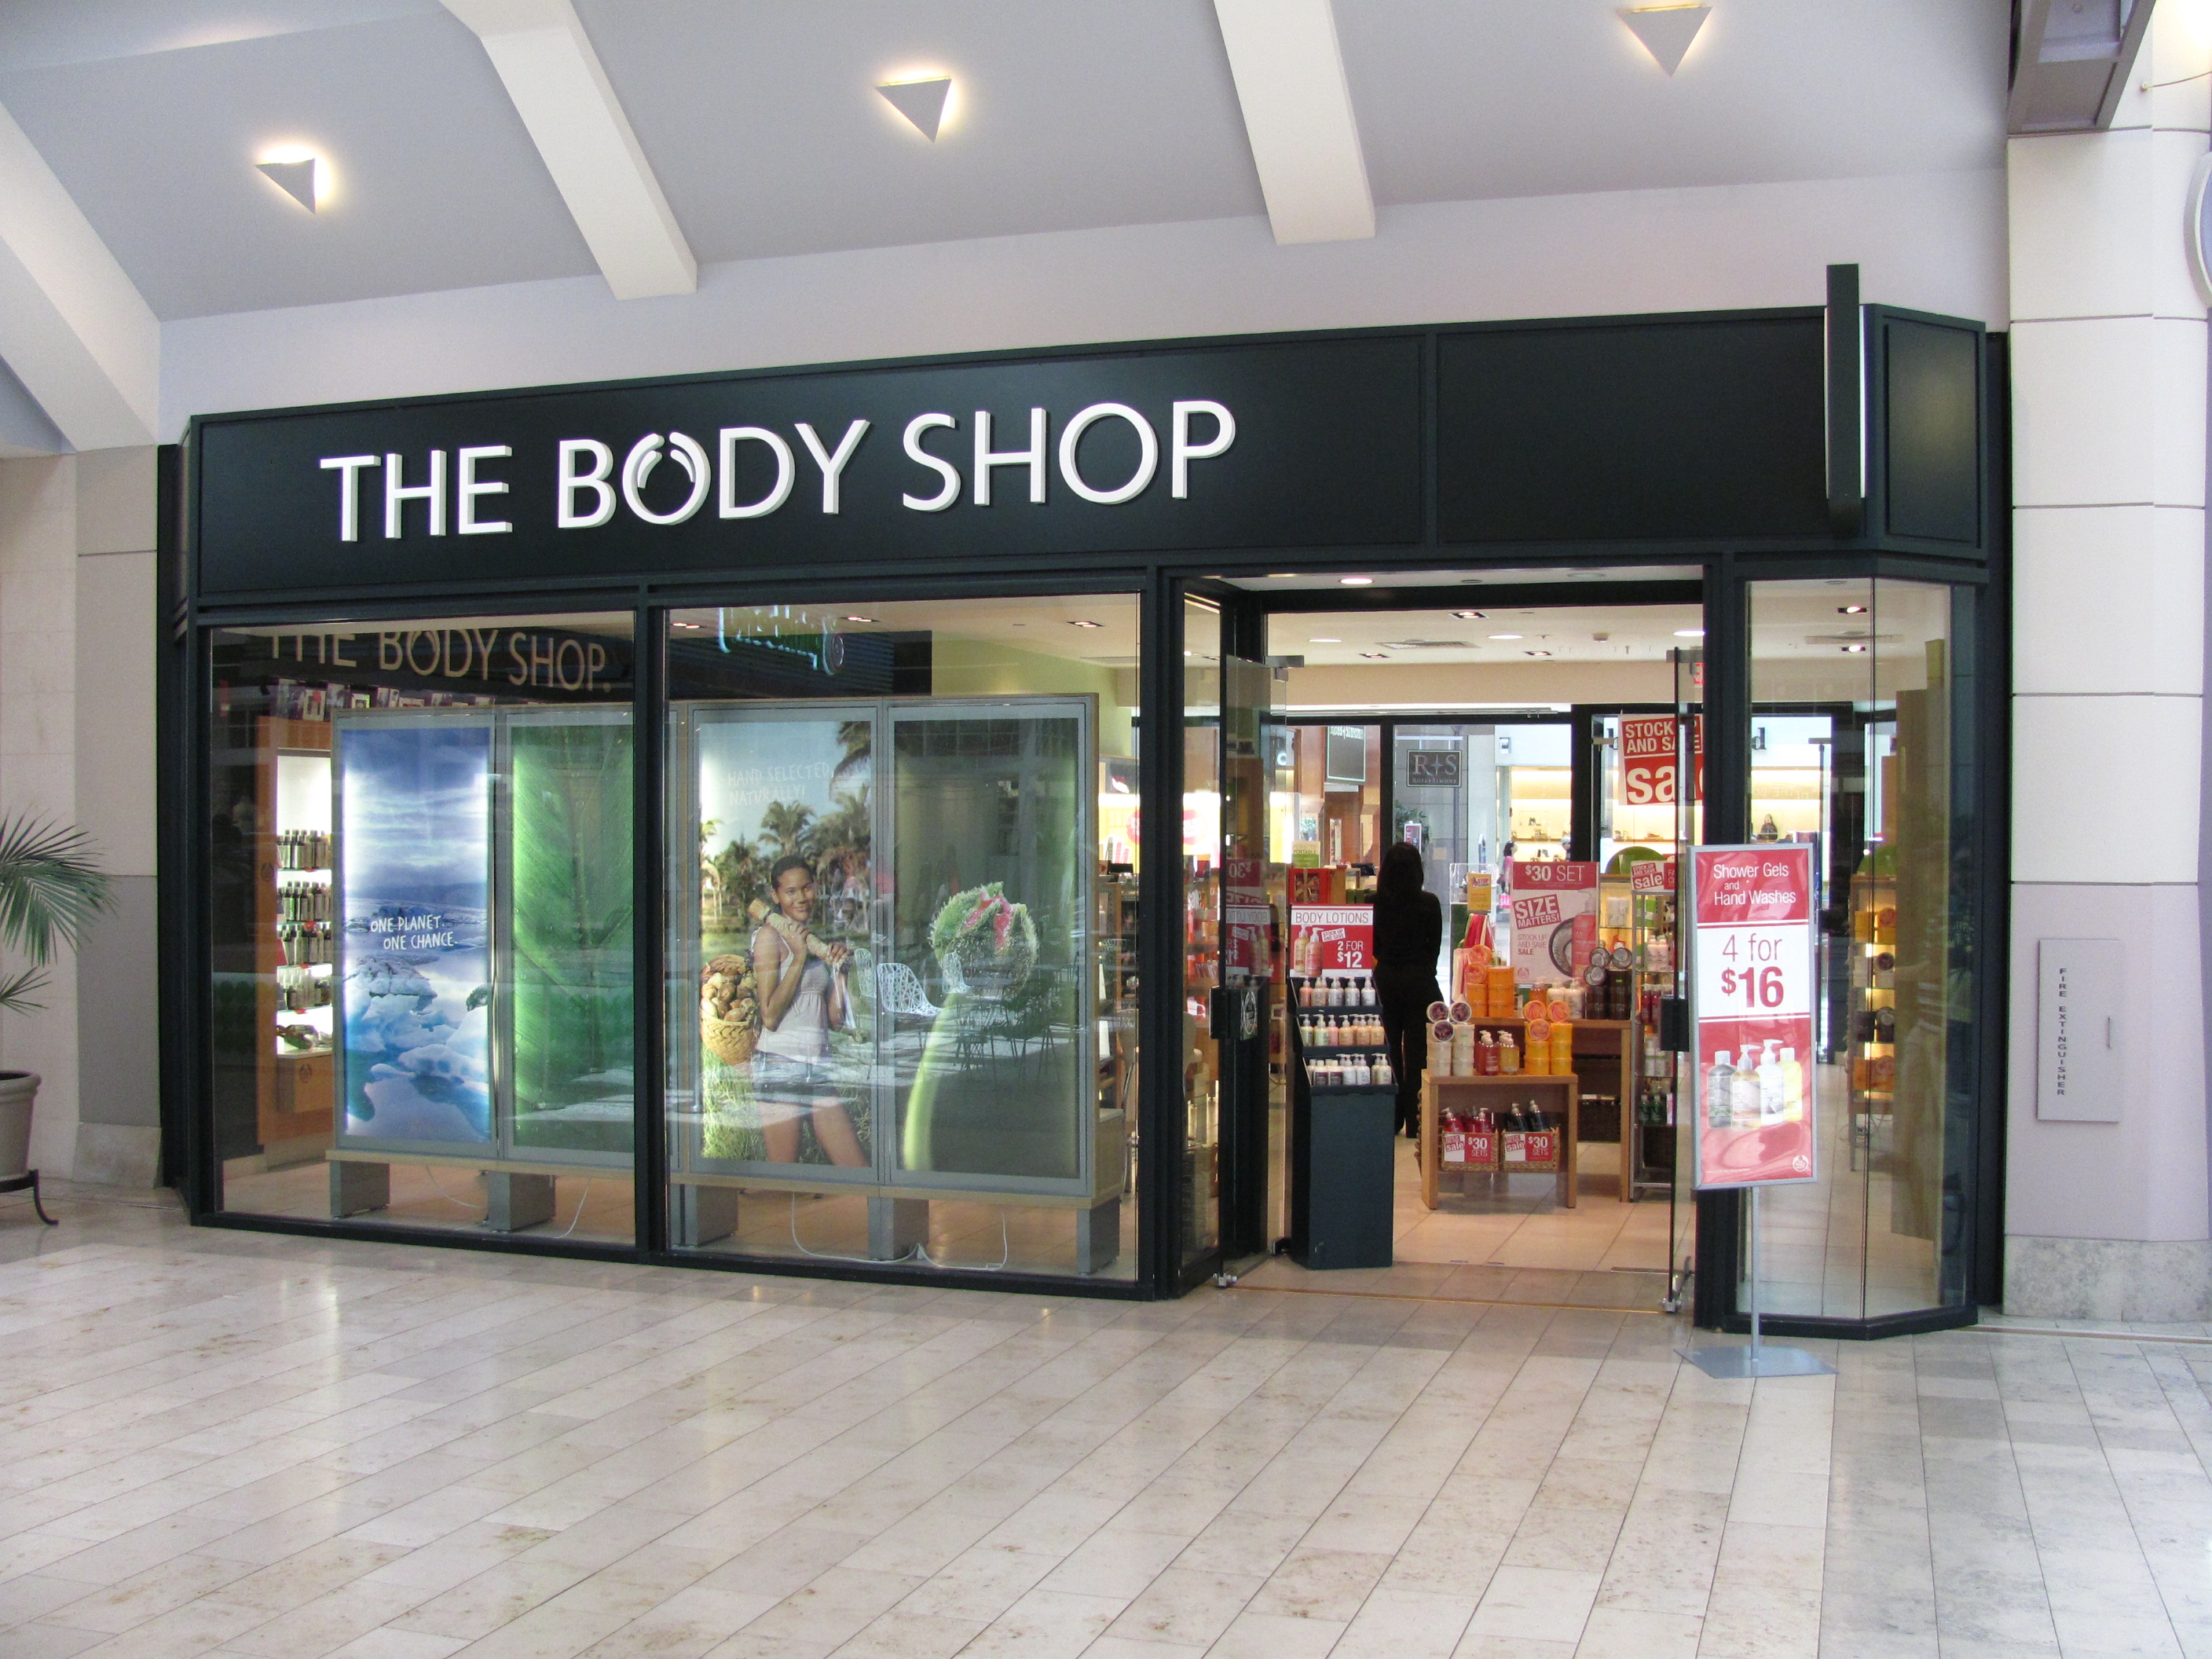 File:The Body Shop in the Prudential Center, Boston MA.jpg - Wikimedia ...: commons.wikimedia.org/wiki/file:the_body_shop_in_the_prudential...